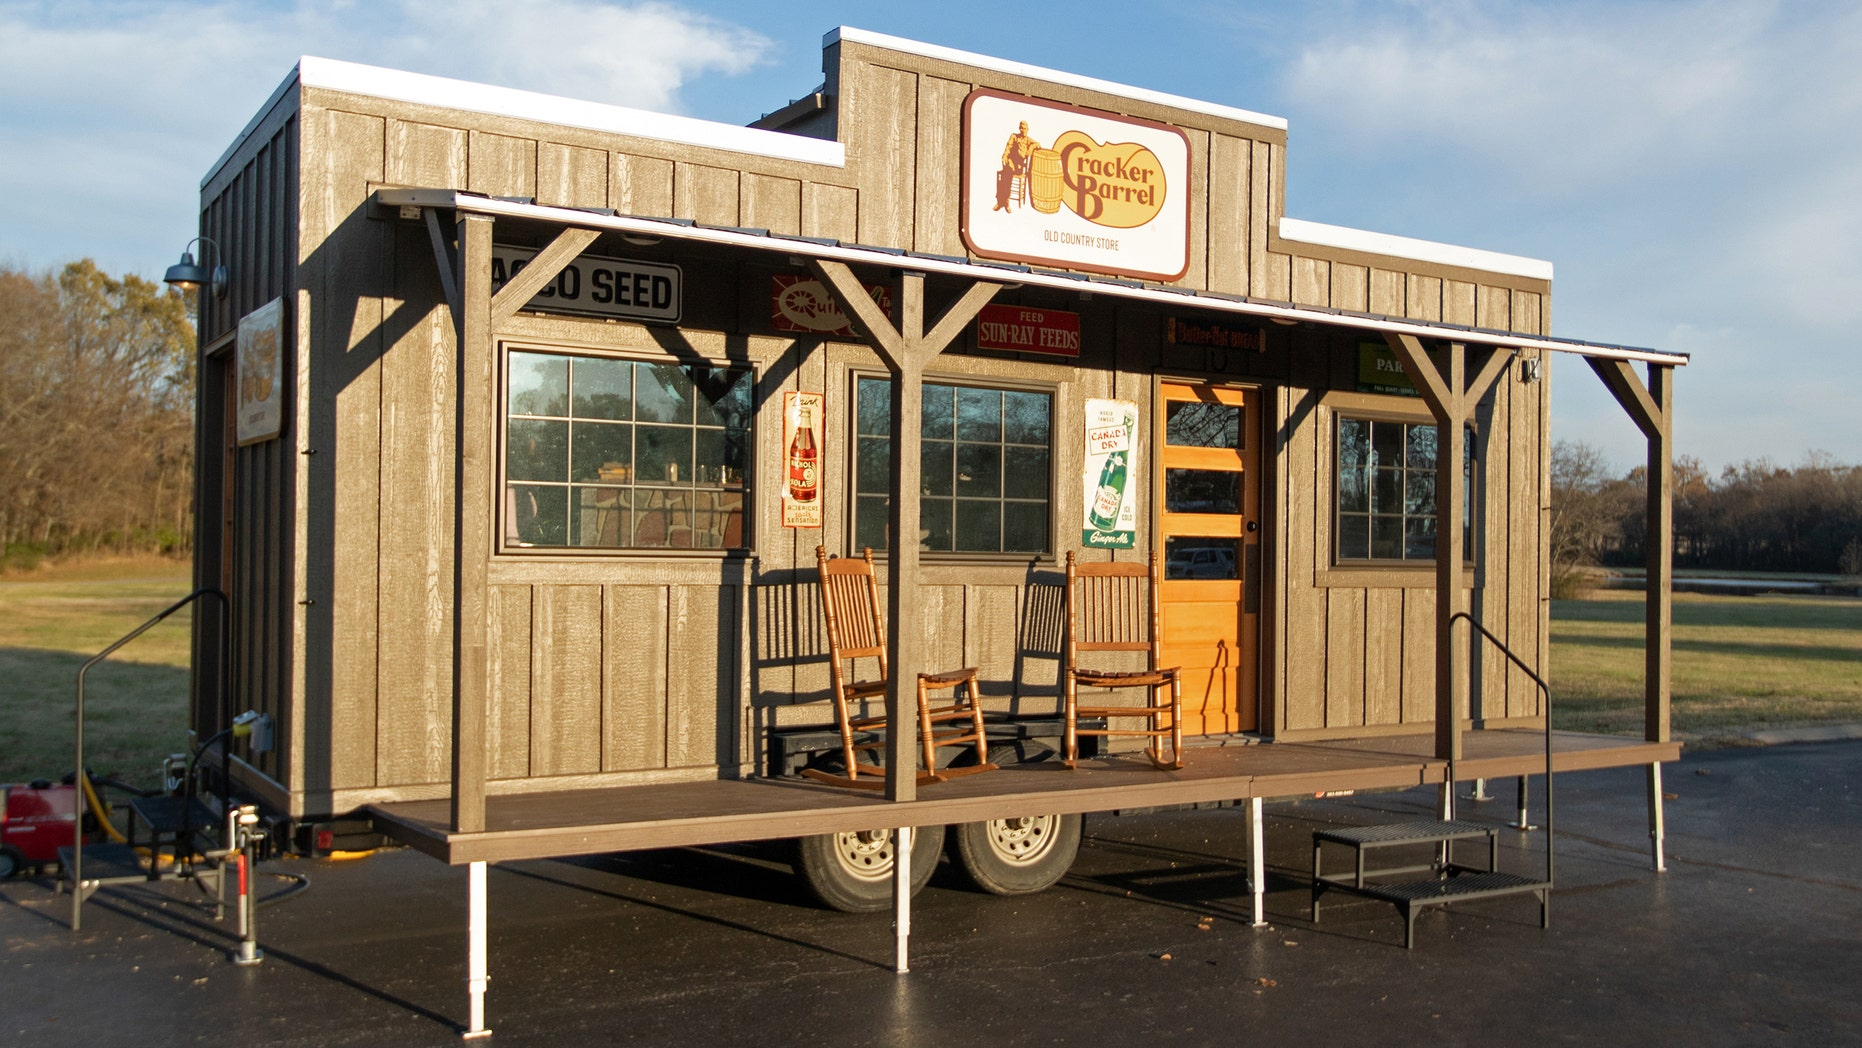 The tiny house will replicate the experience of visiting the iconic country home store, complete with front porch and wooden rocking chairs.